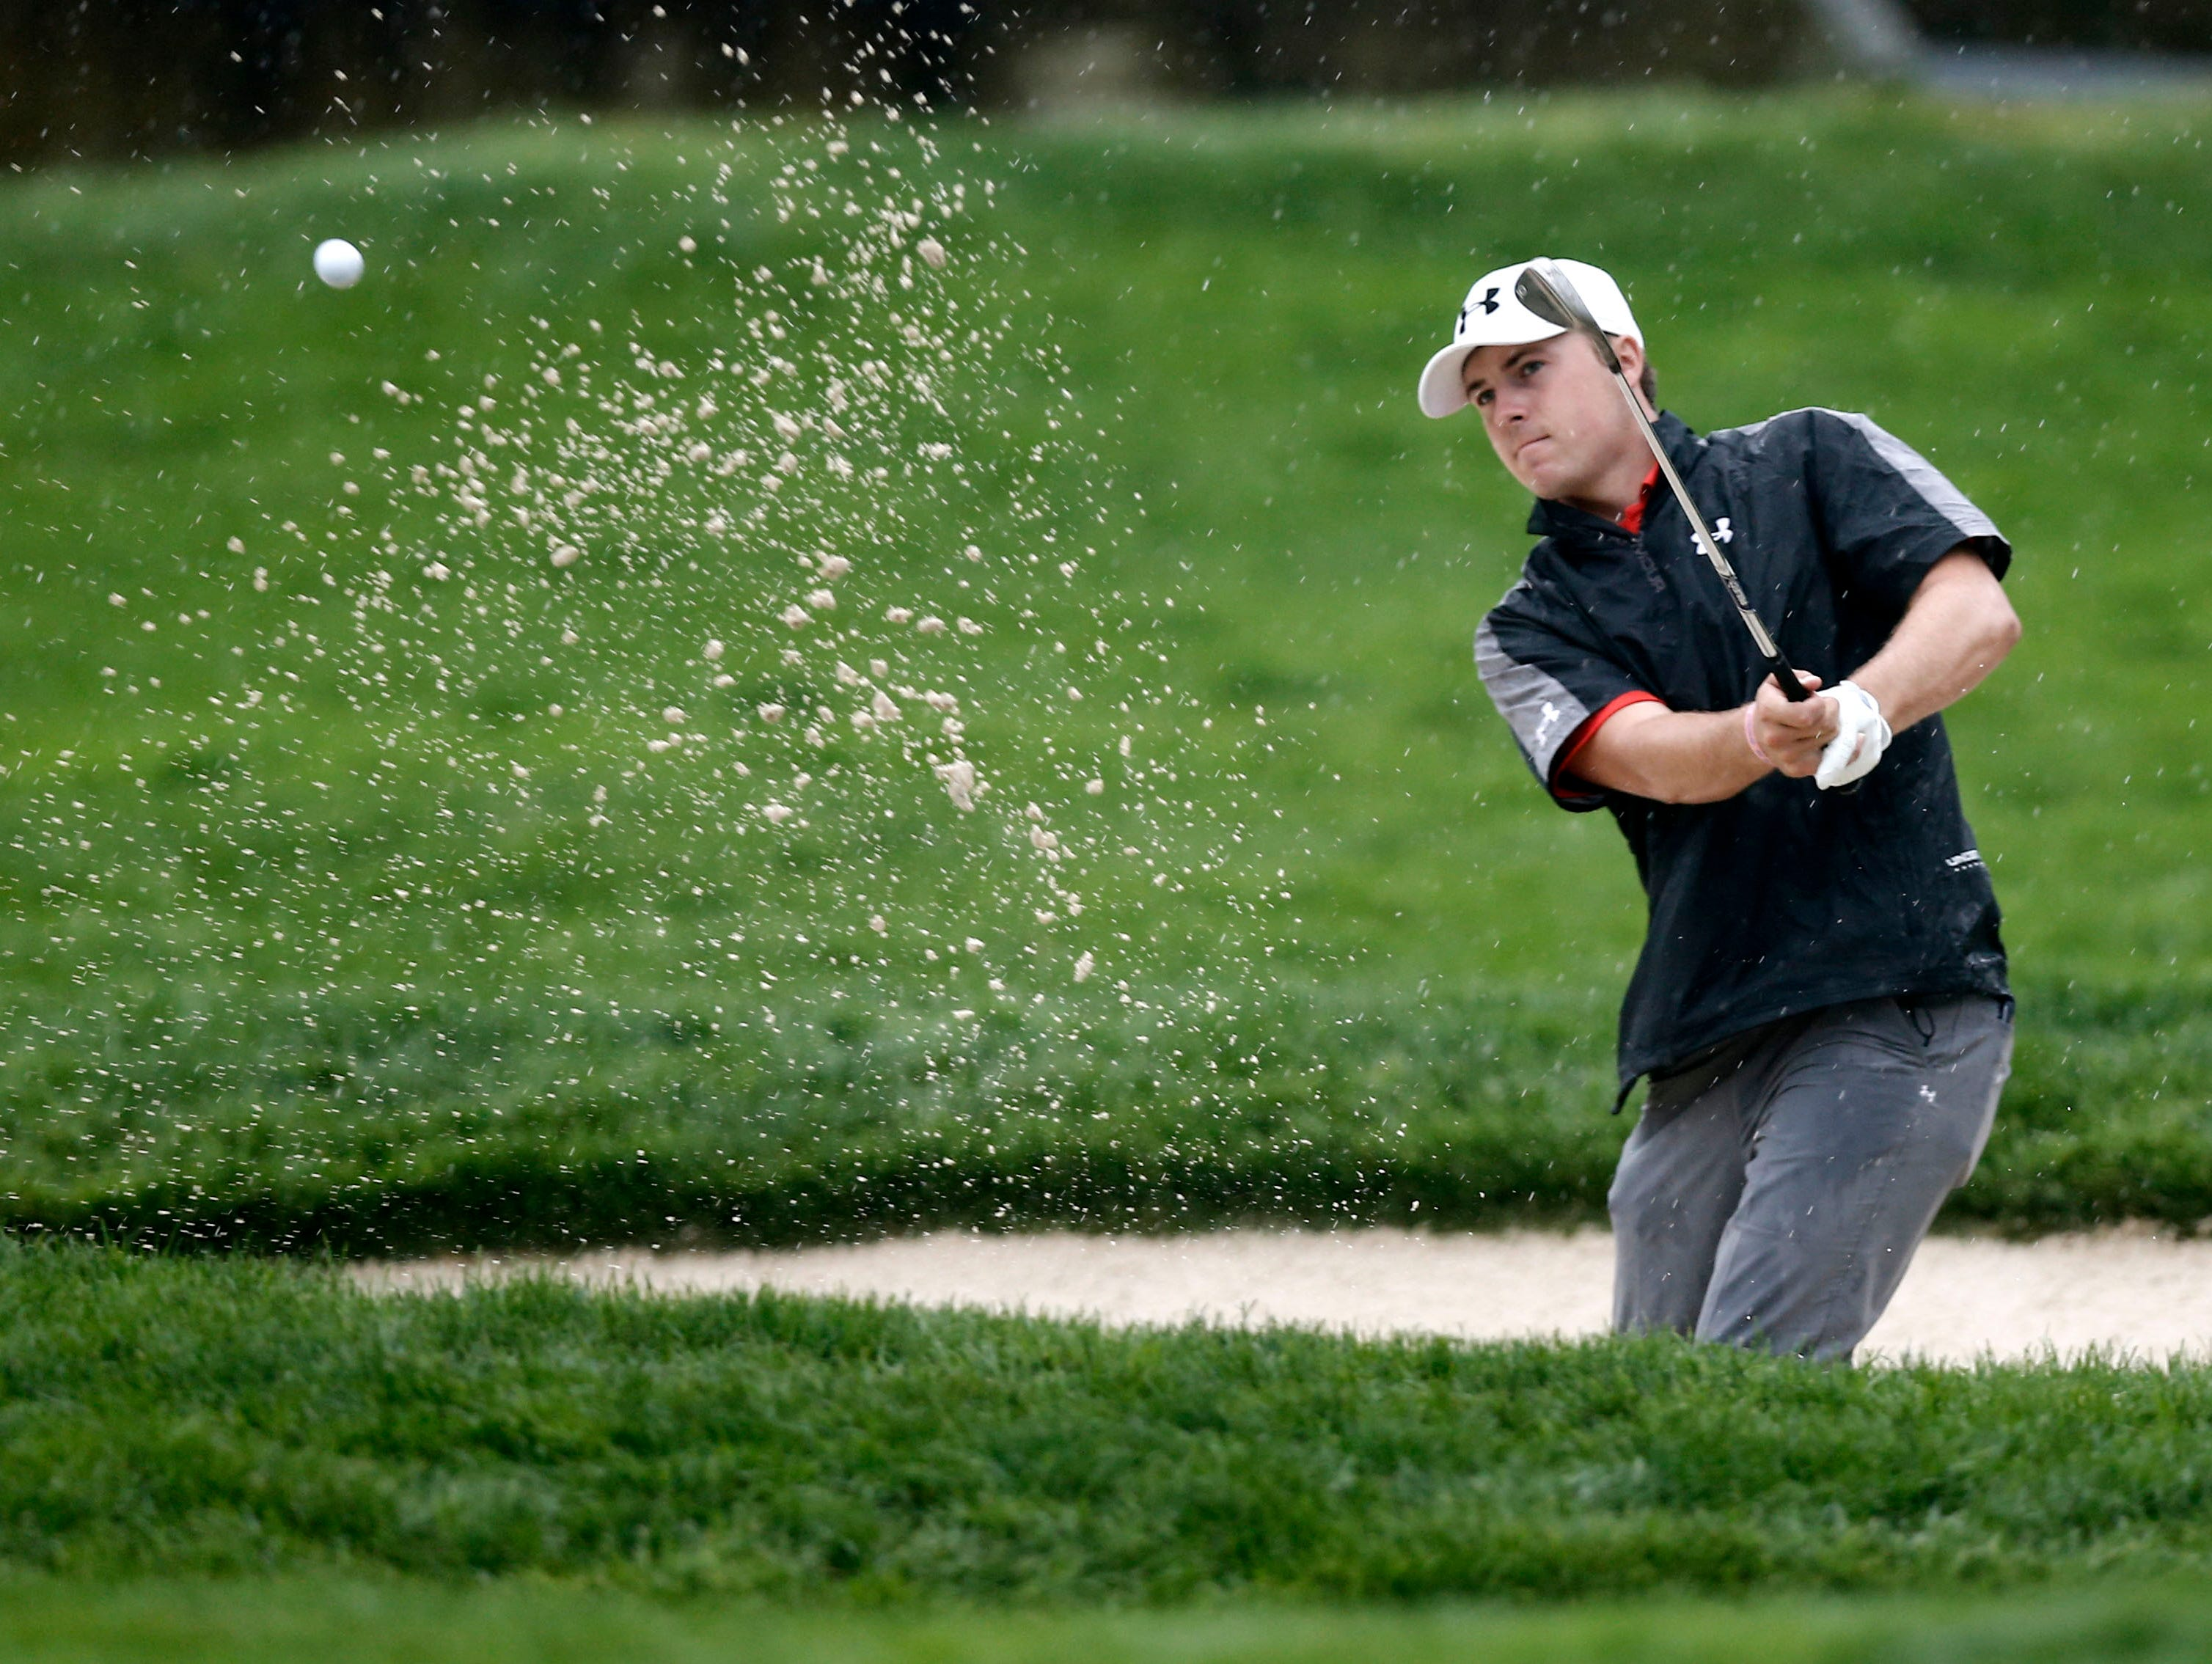 Jordan Spieth plays out of a greenside bunker on the 11th hole.